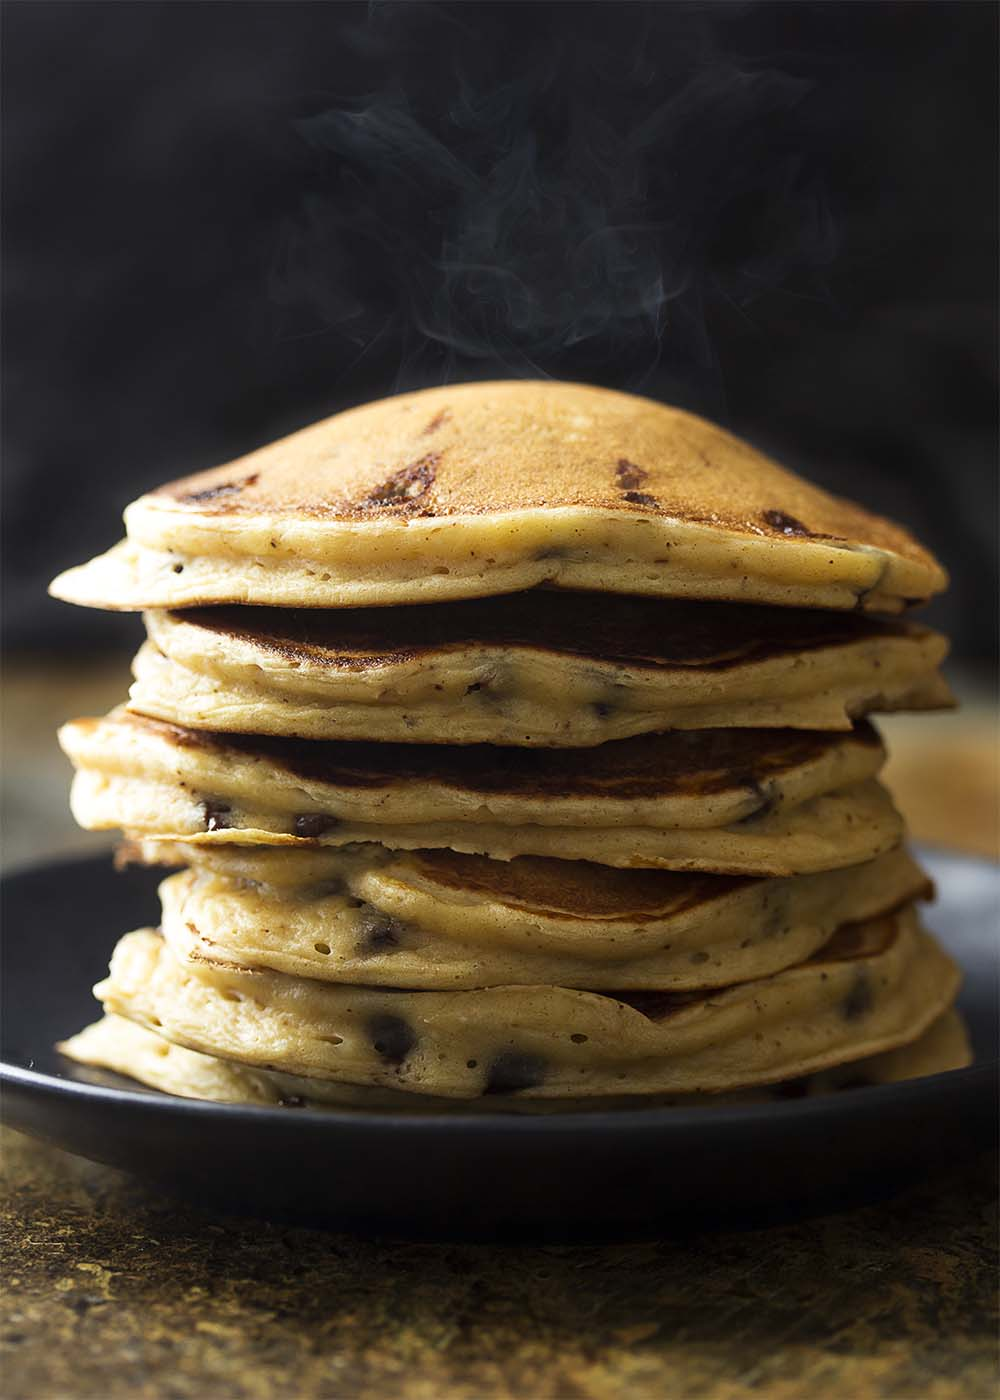 A hot stack of fluffy ricotta pancakes on a plate showing steam coming up off them.